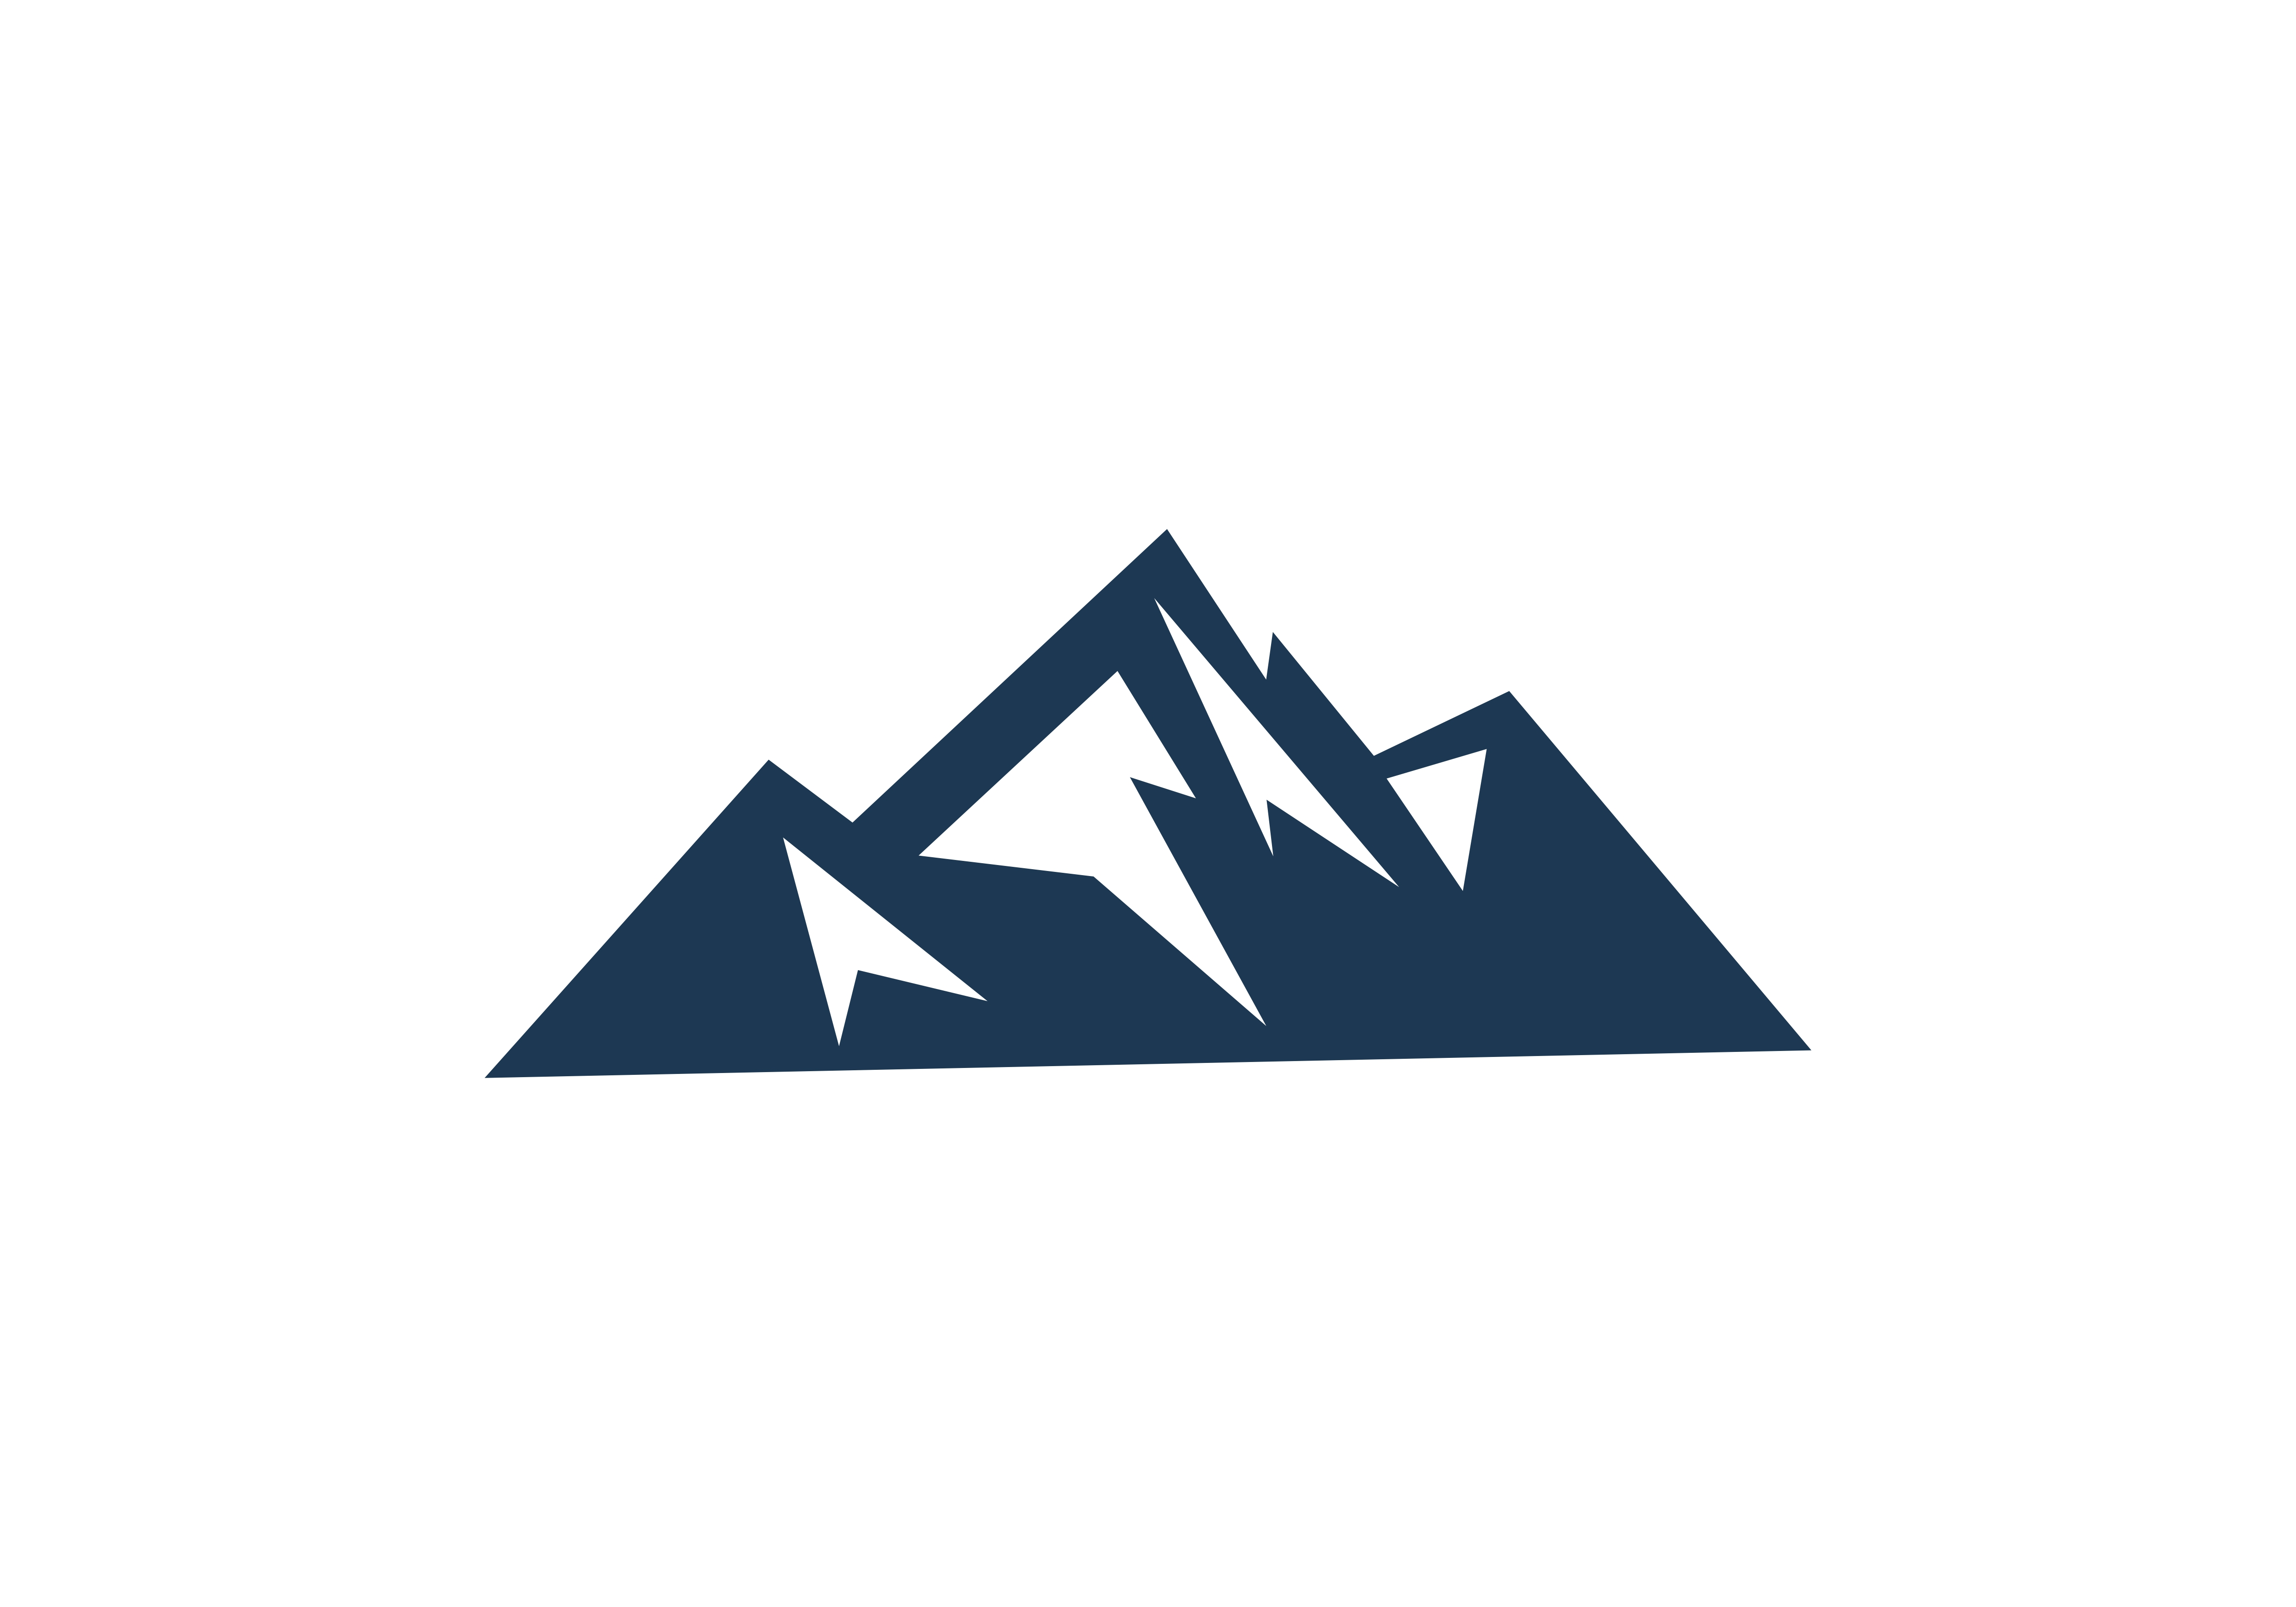 Download Free Mountain Climbing Logo Graphic By Deemka Studio Creative Fabrica for Cricut Explore, Silhouette and other cutting machines.